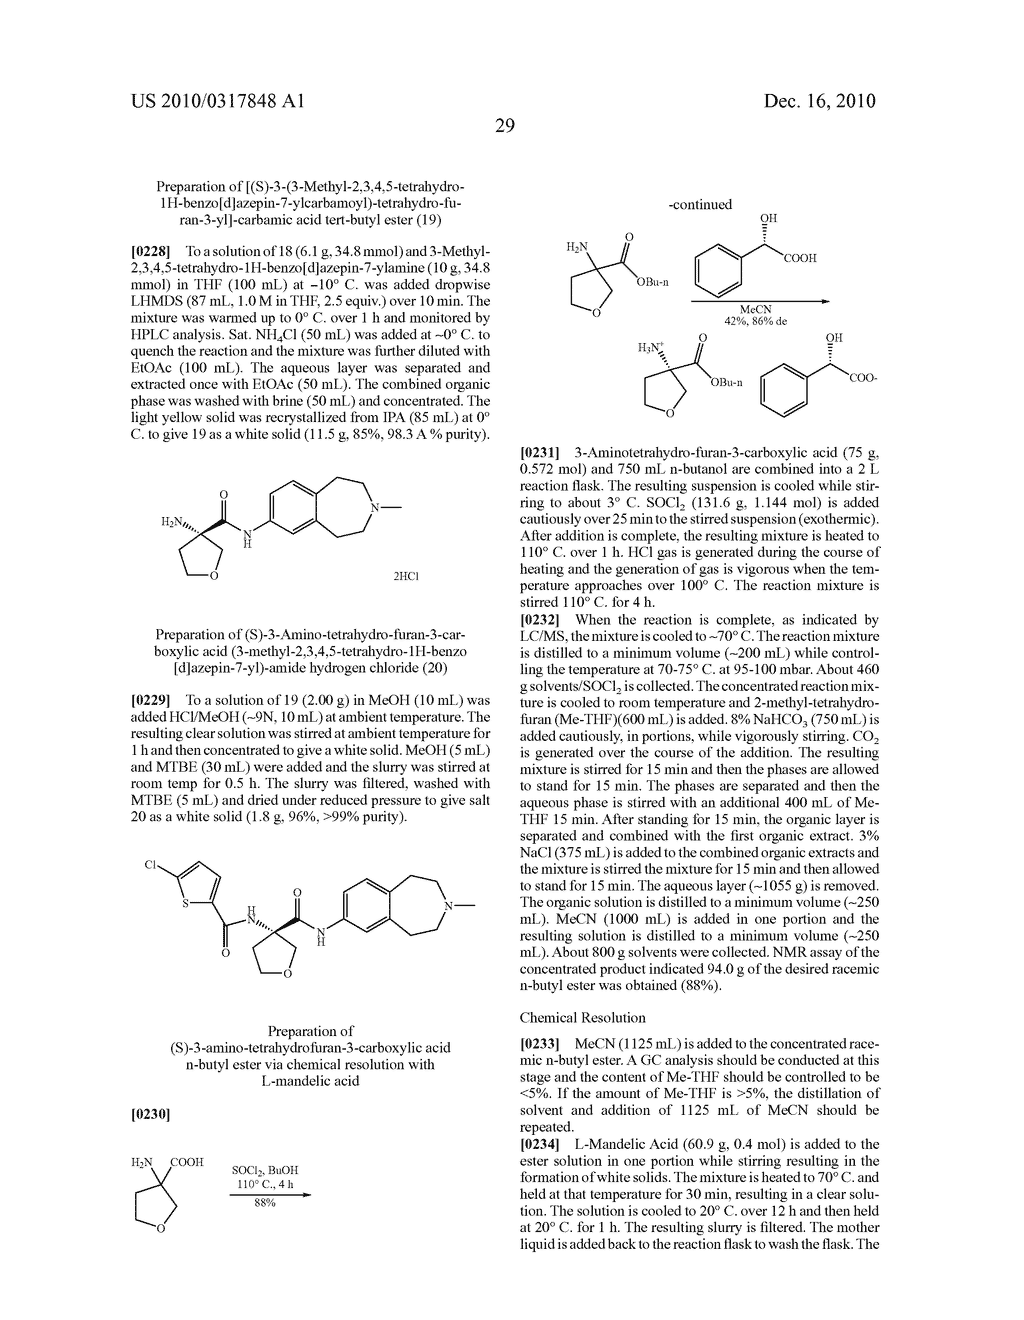 PROCESS FOR THE SYNTHESIS OF DERIVATIVES OF 3-AMINO-TETRAHYDROFURAN-3-CARBOXYLIC ACID AND USE THEREOF AS MEDICAMENTS - diagram, schematic, and image 34